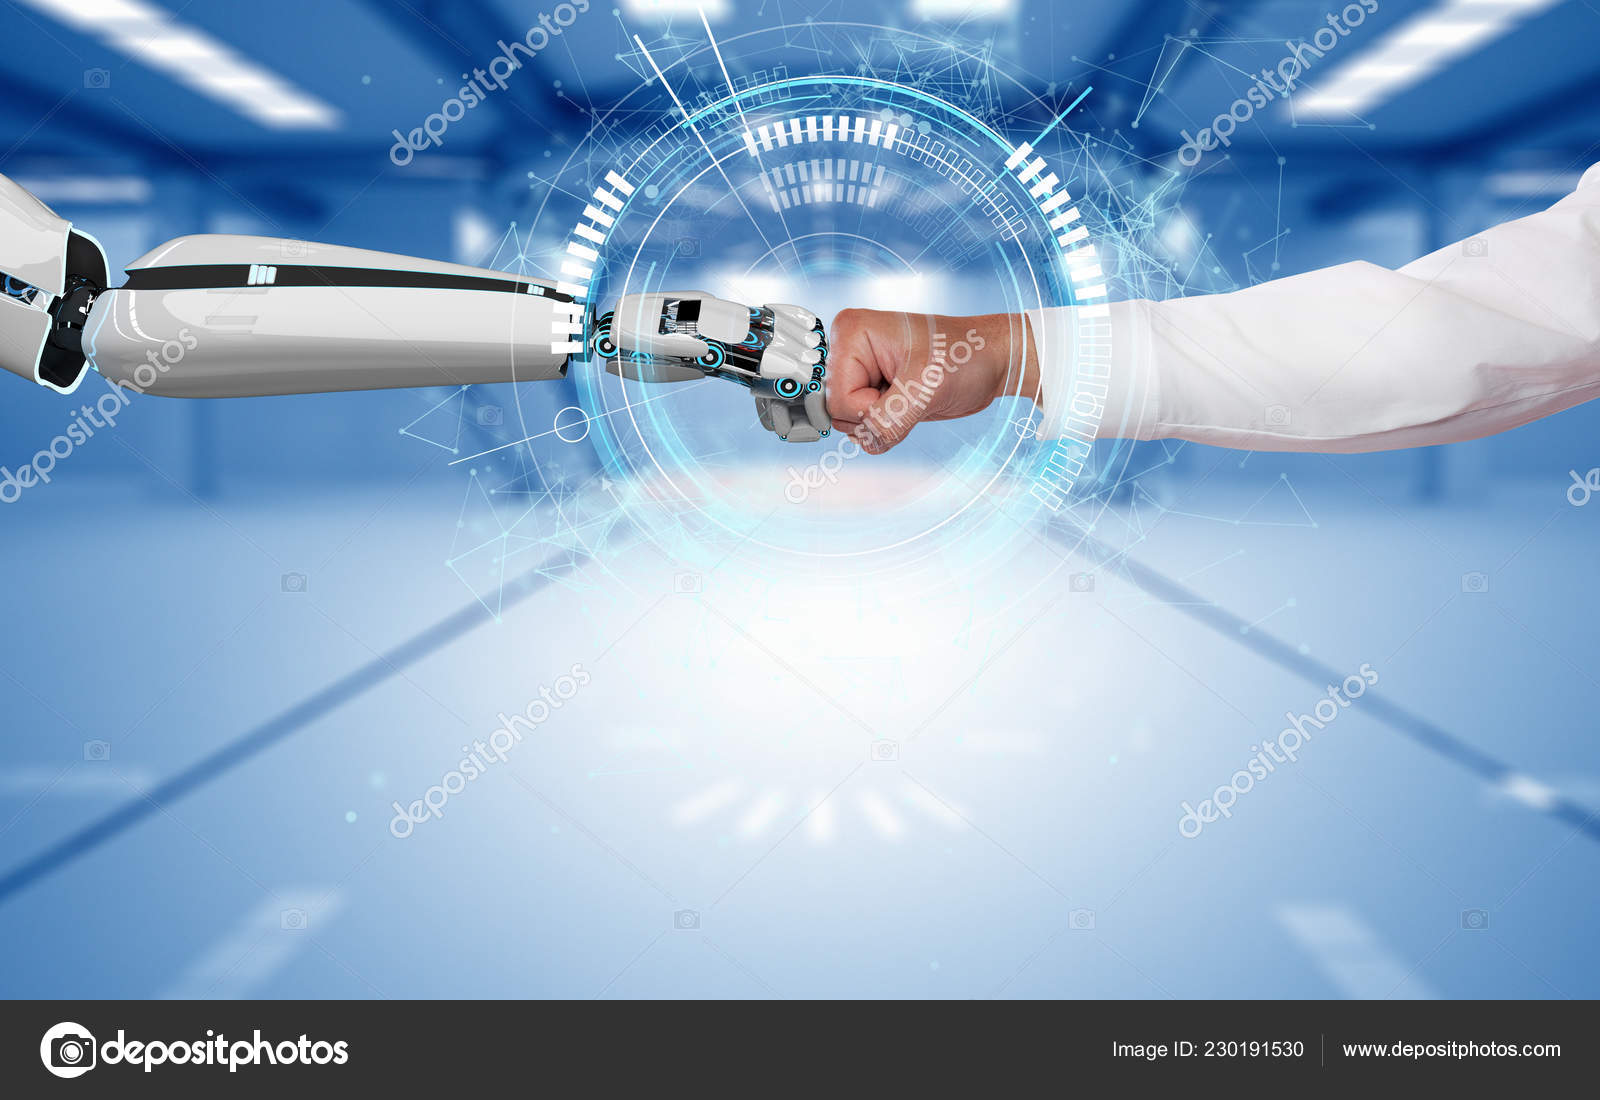 Robot Hand Human Hand Touch Each Other Hud Display